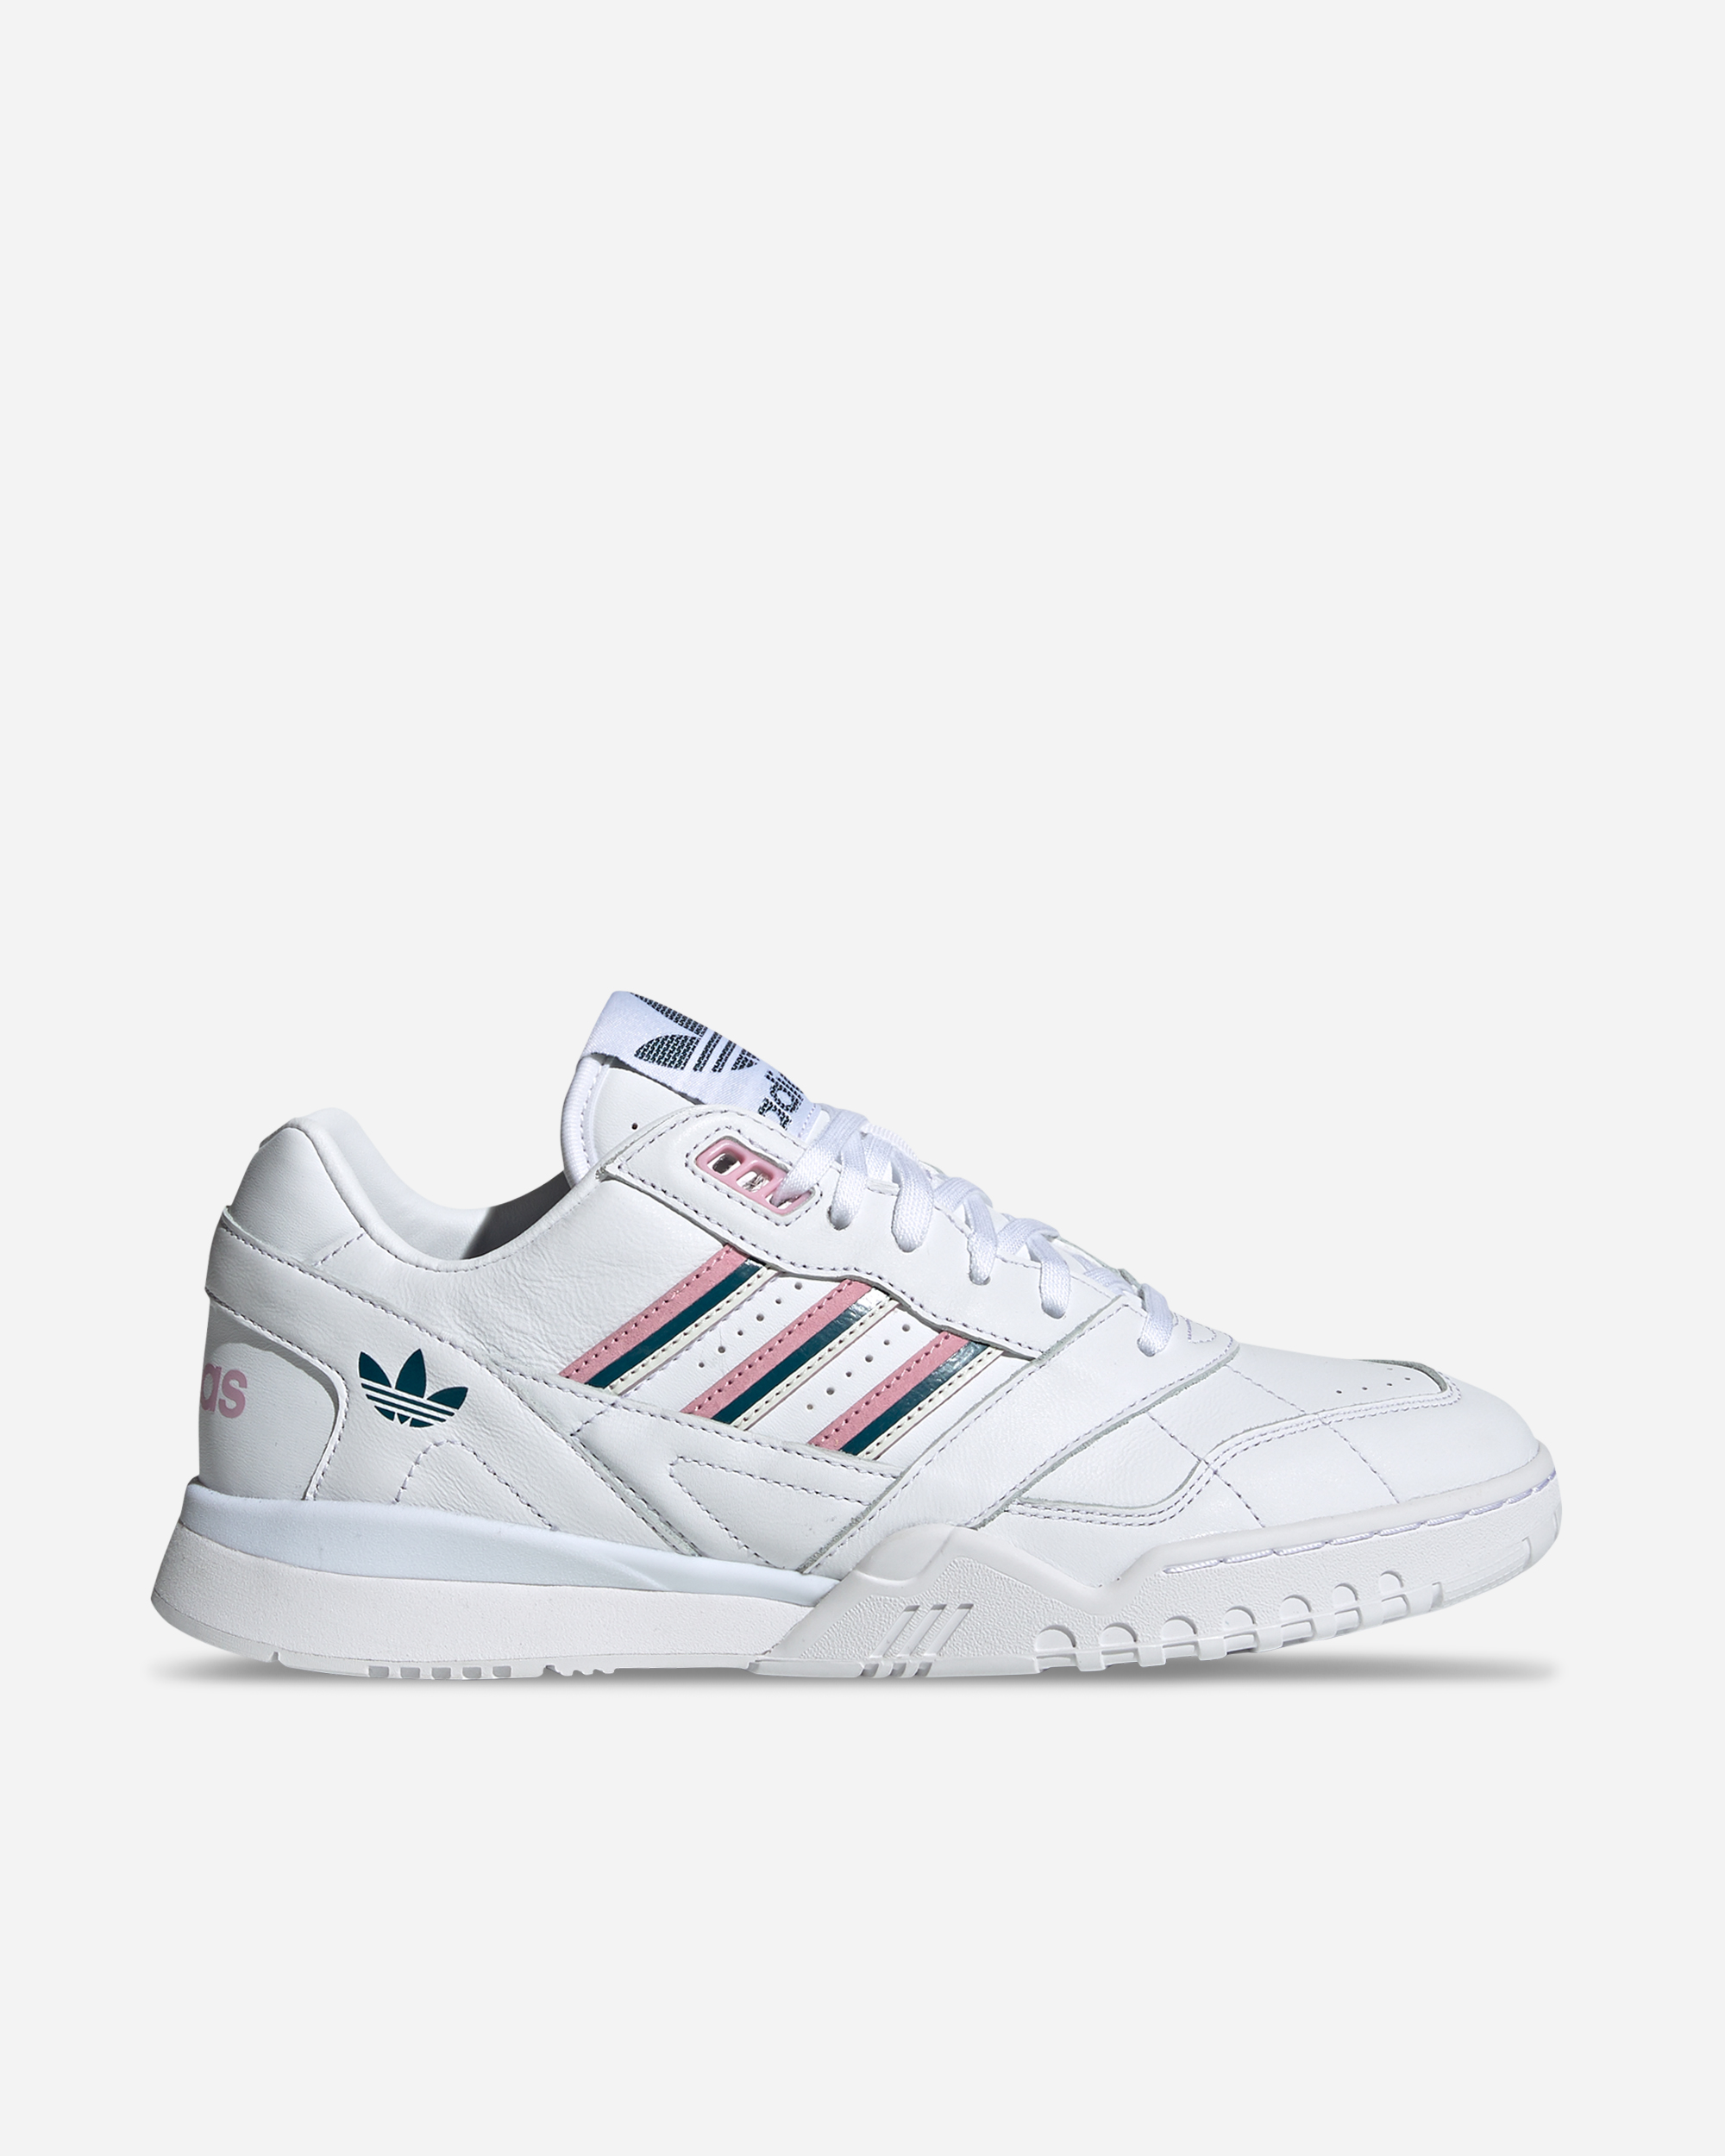 Adidas Originals A R Trainer White Pink Ee5408 Naked